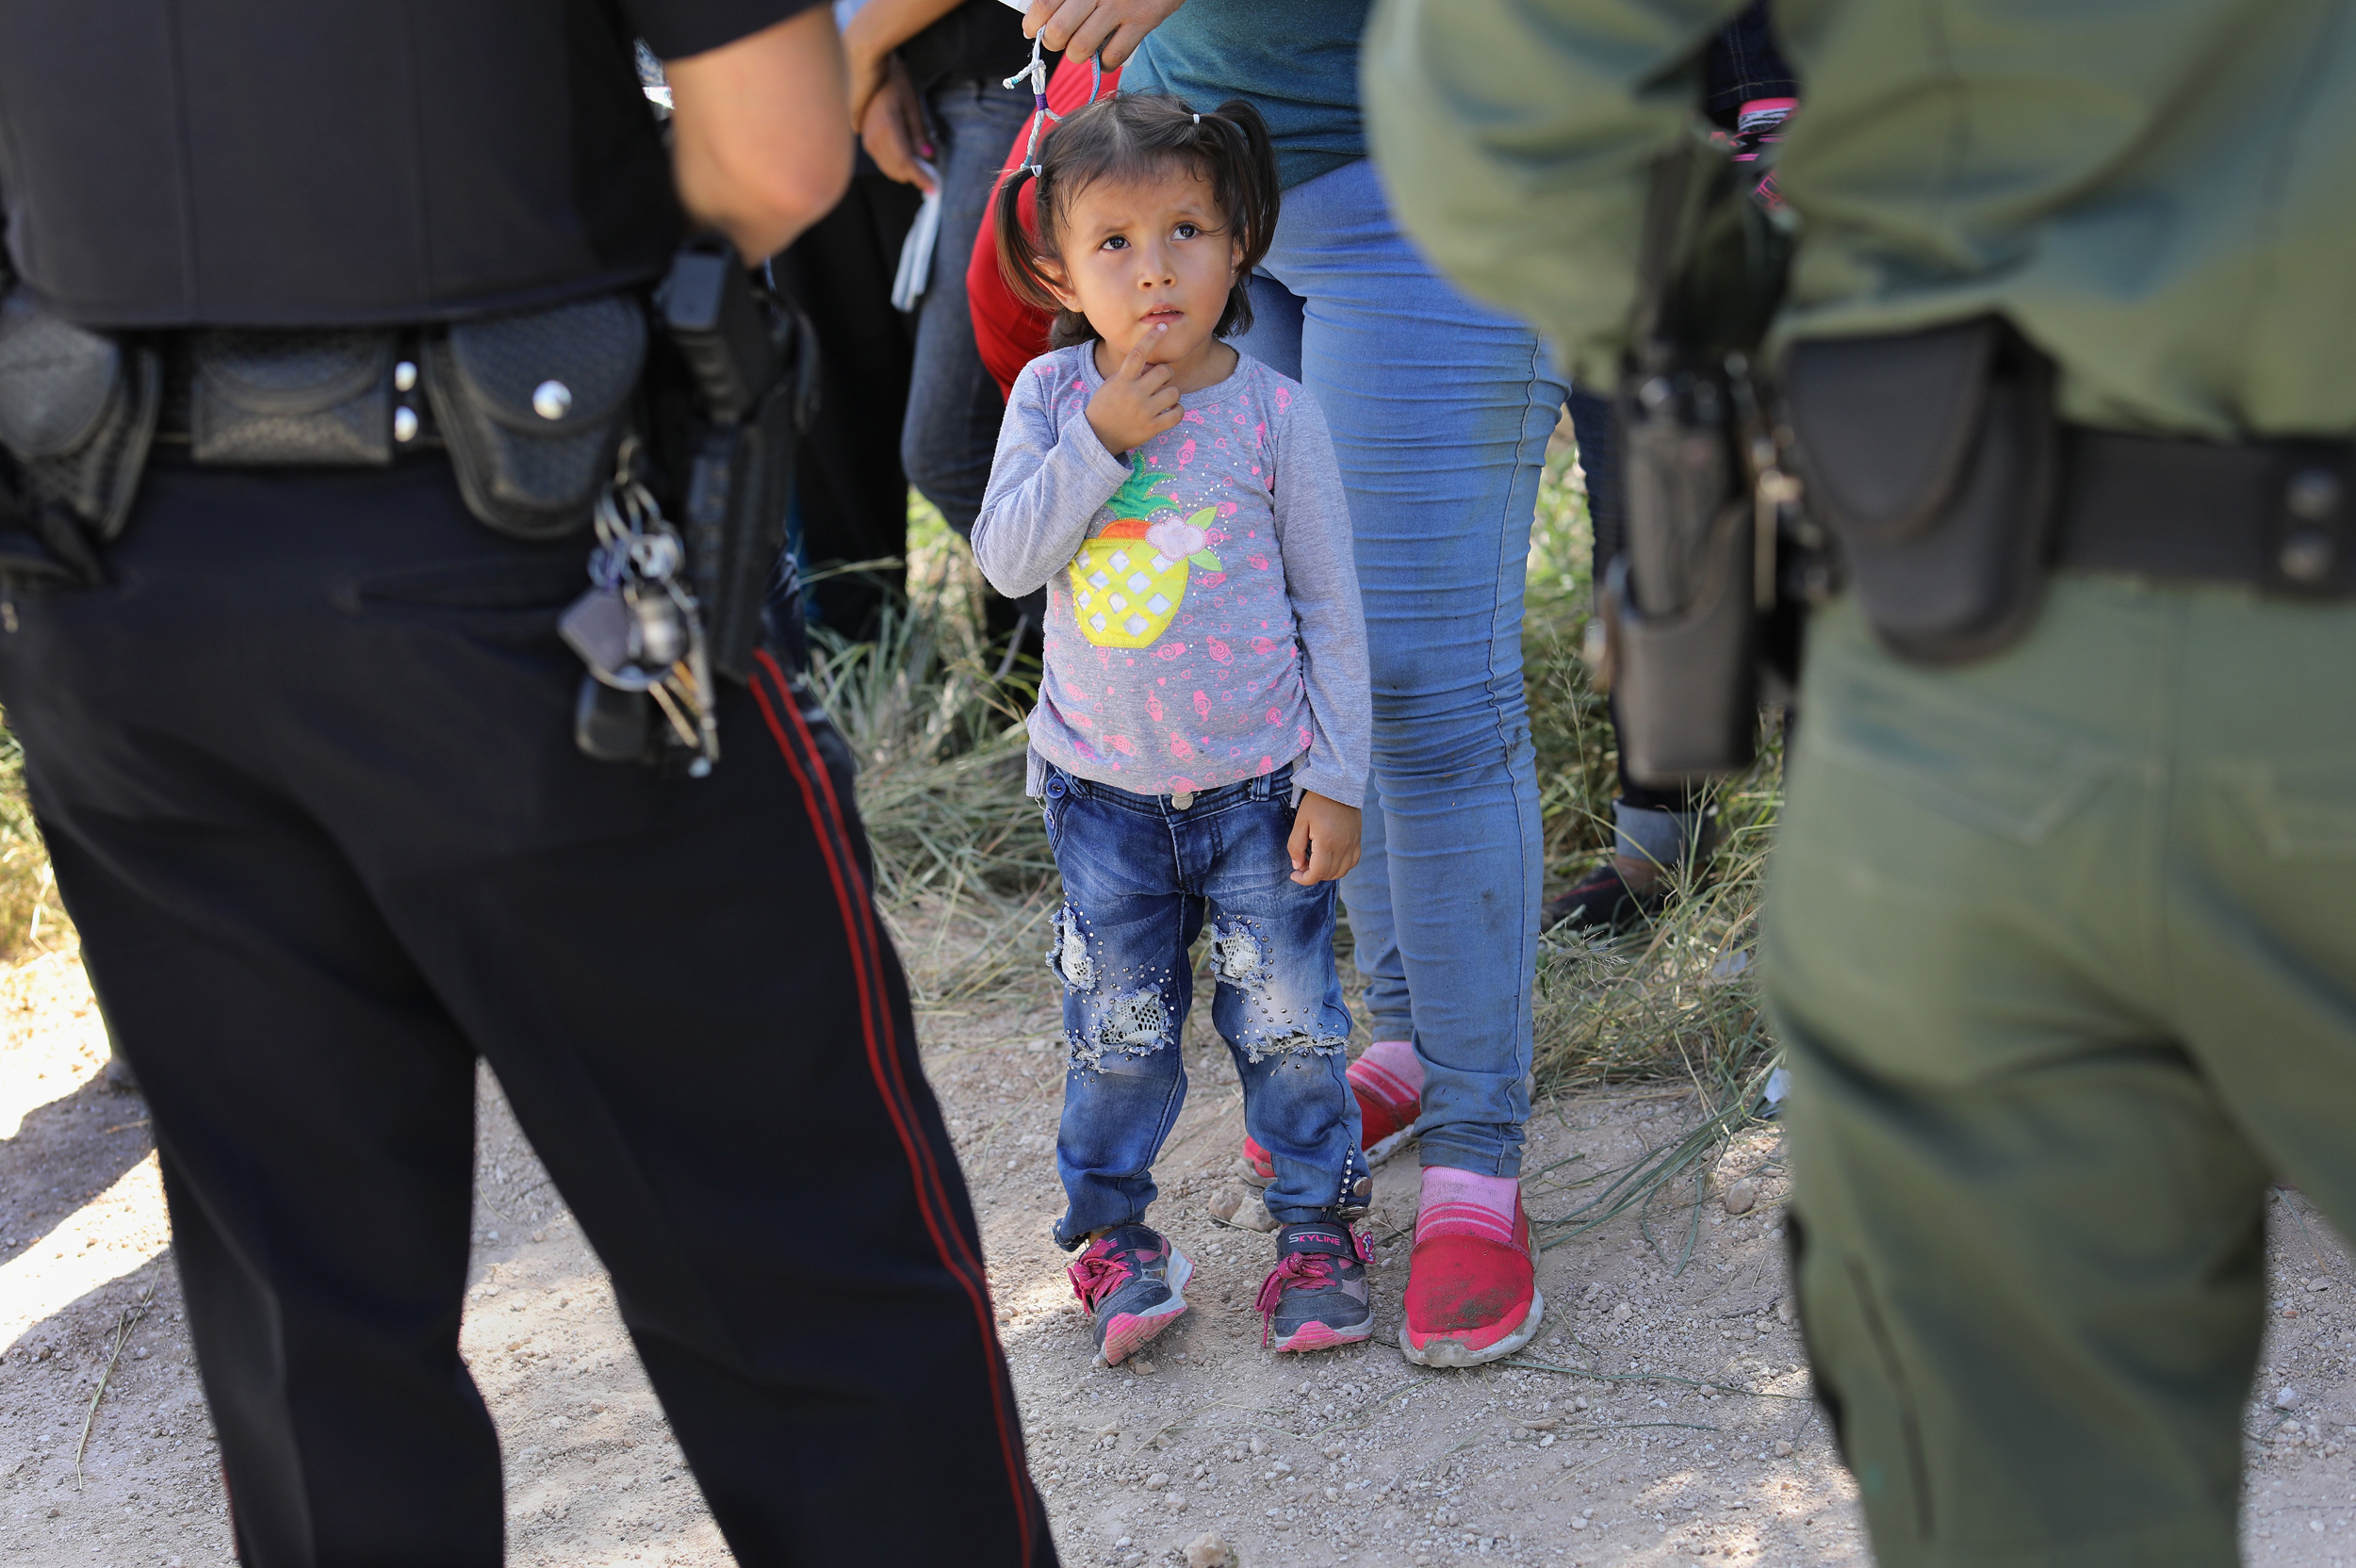 Border separations can permanently damage kids